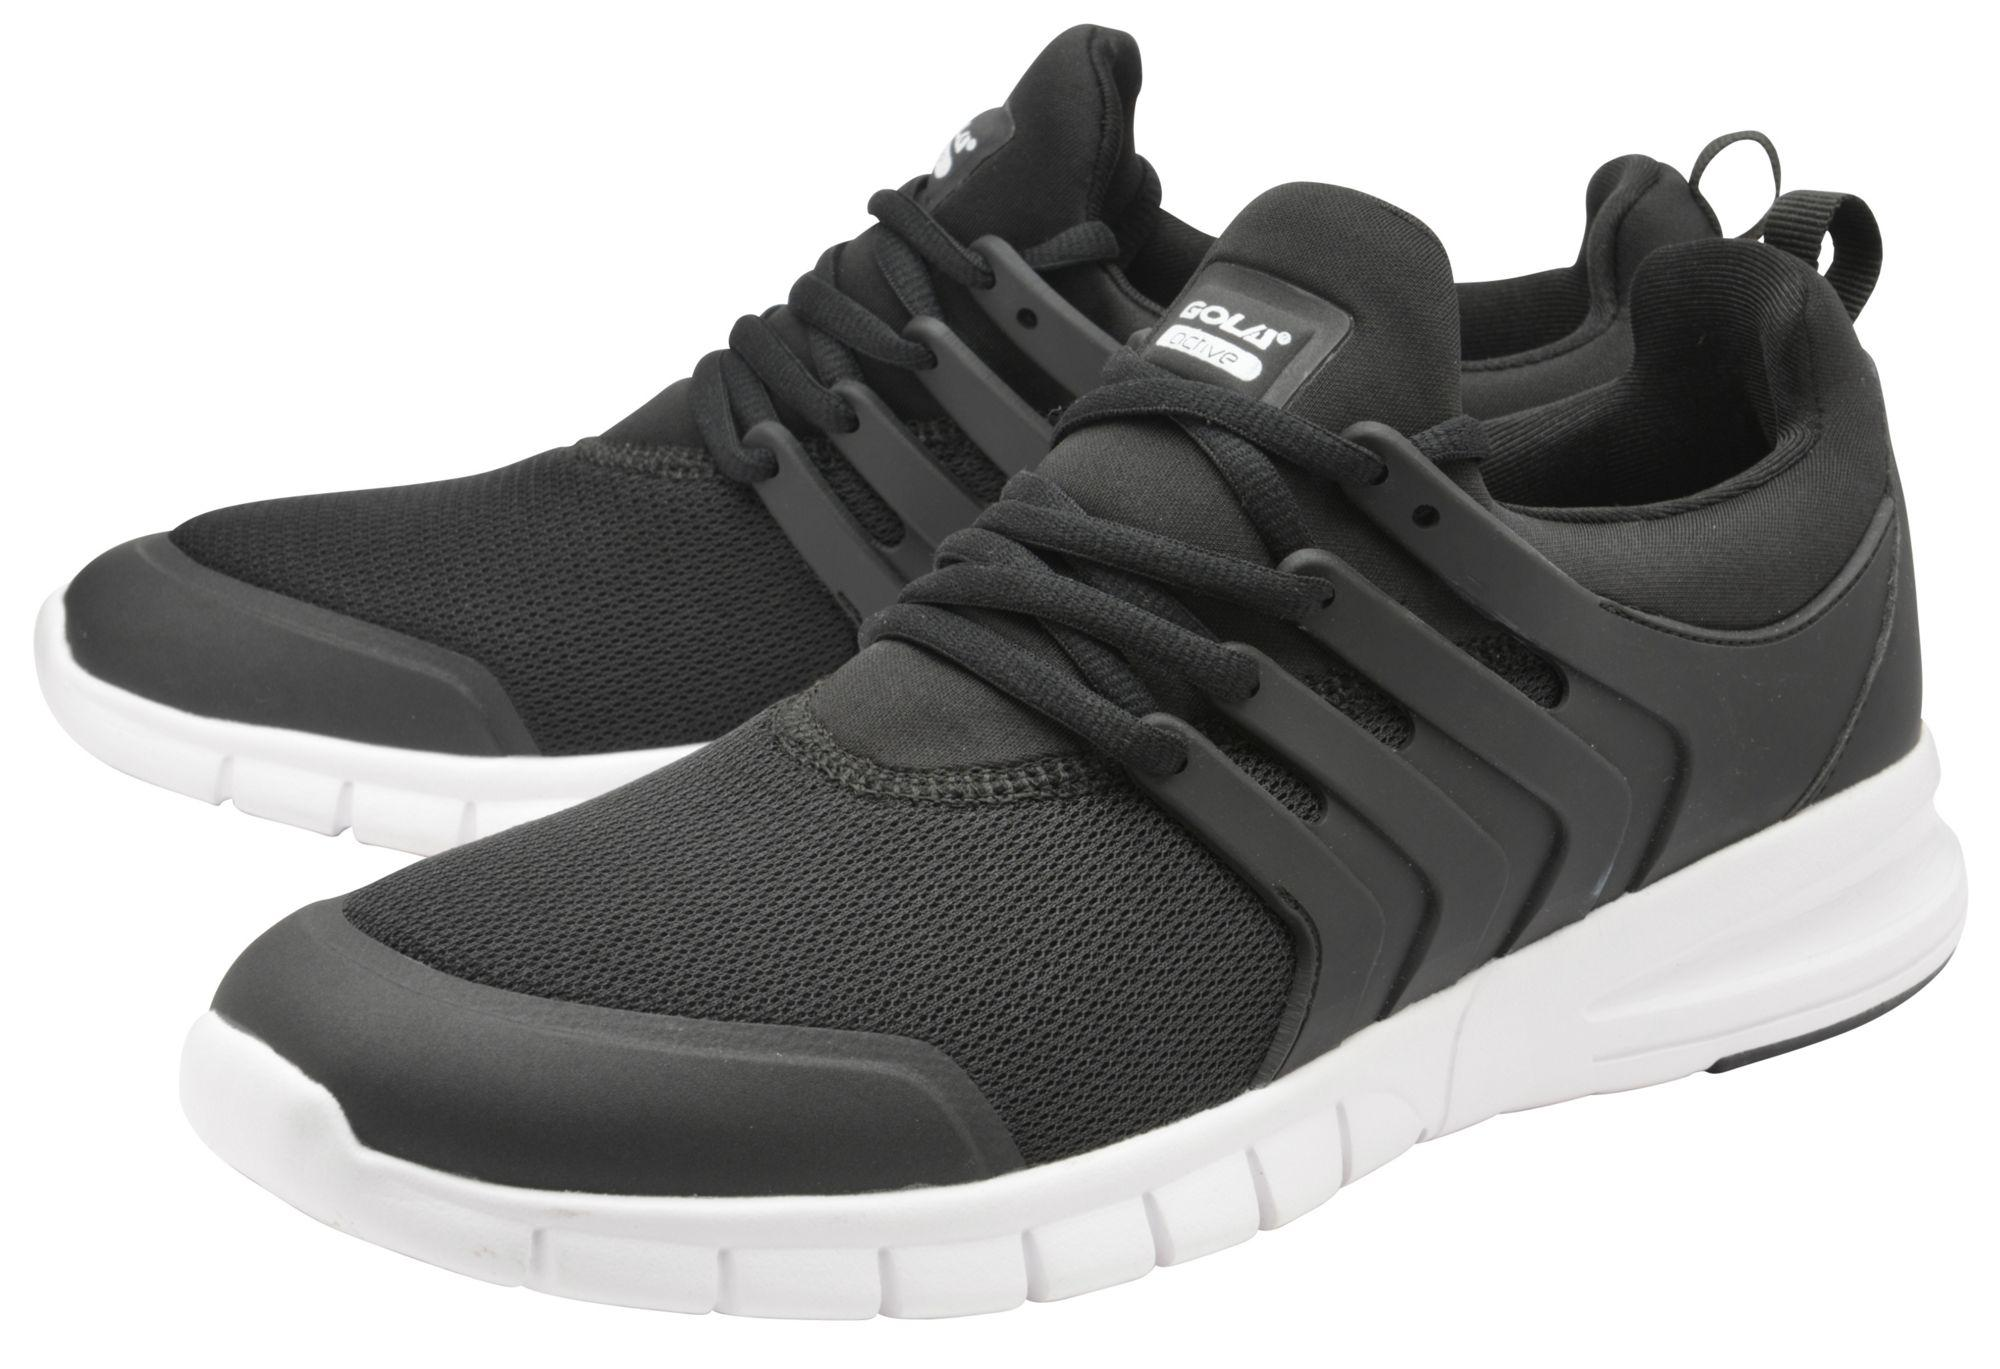 cheap 2015 new Black/White 'Gravity' men's lace up sports trainers clearance clearance explore sale online free shipping pictures NBCucAnbdh